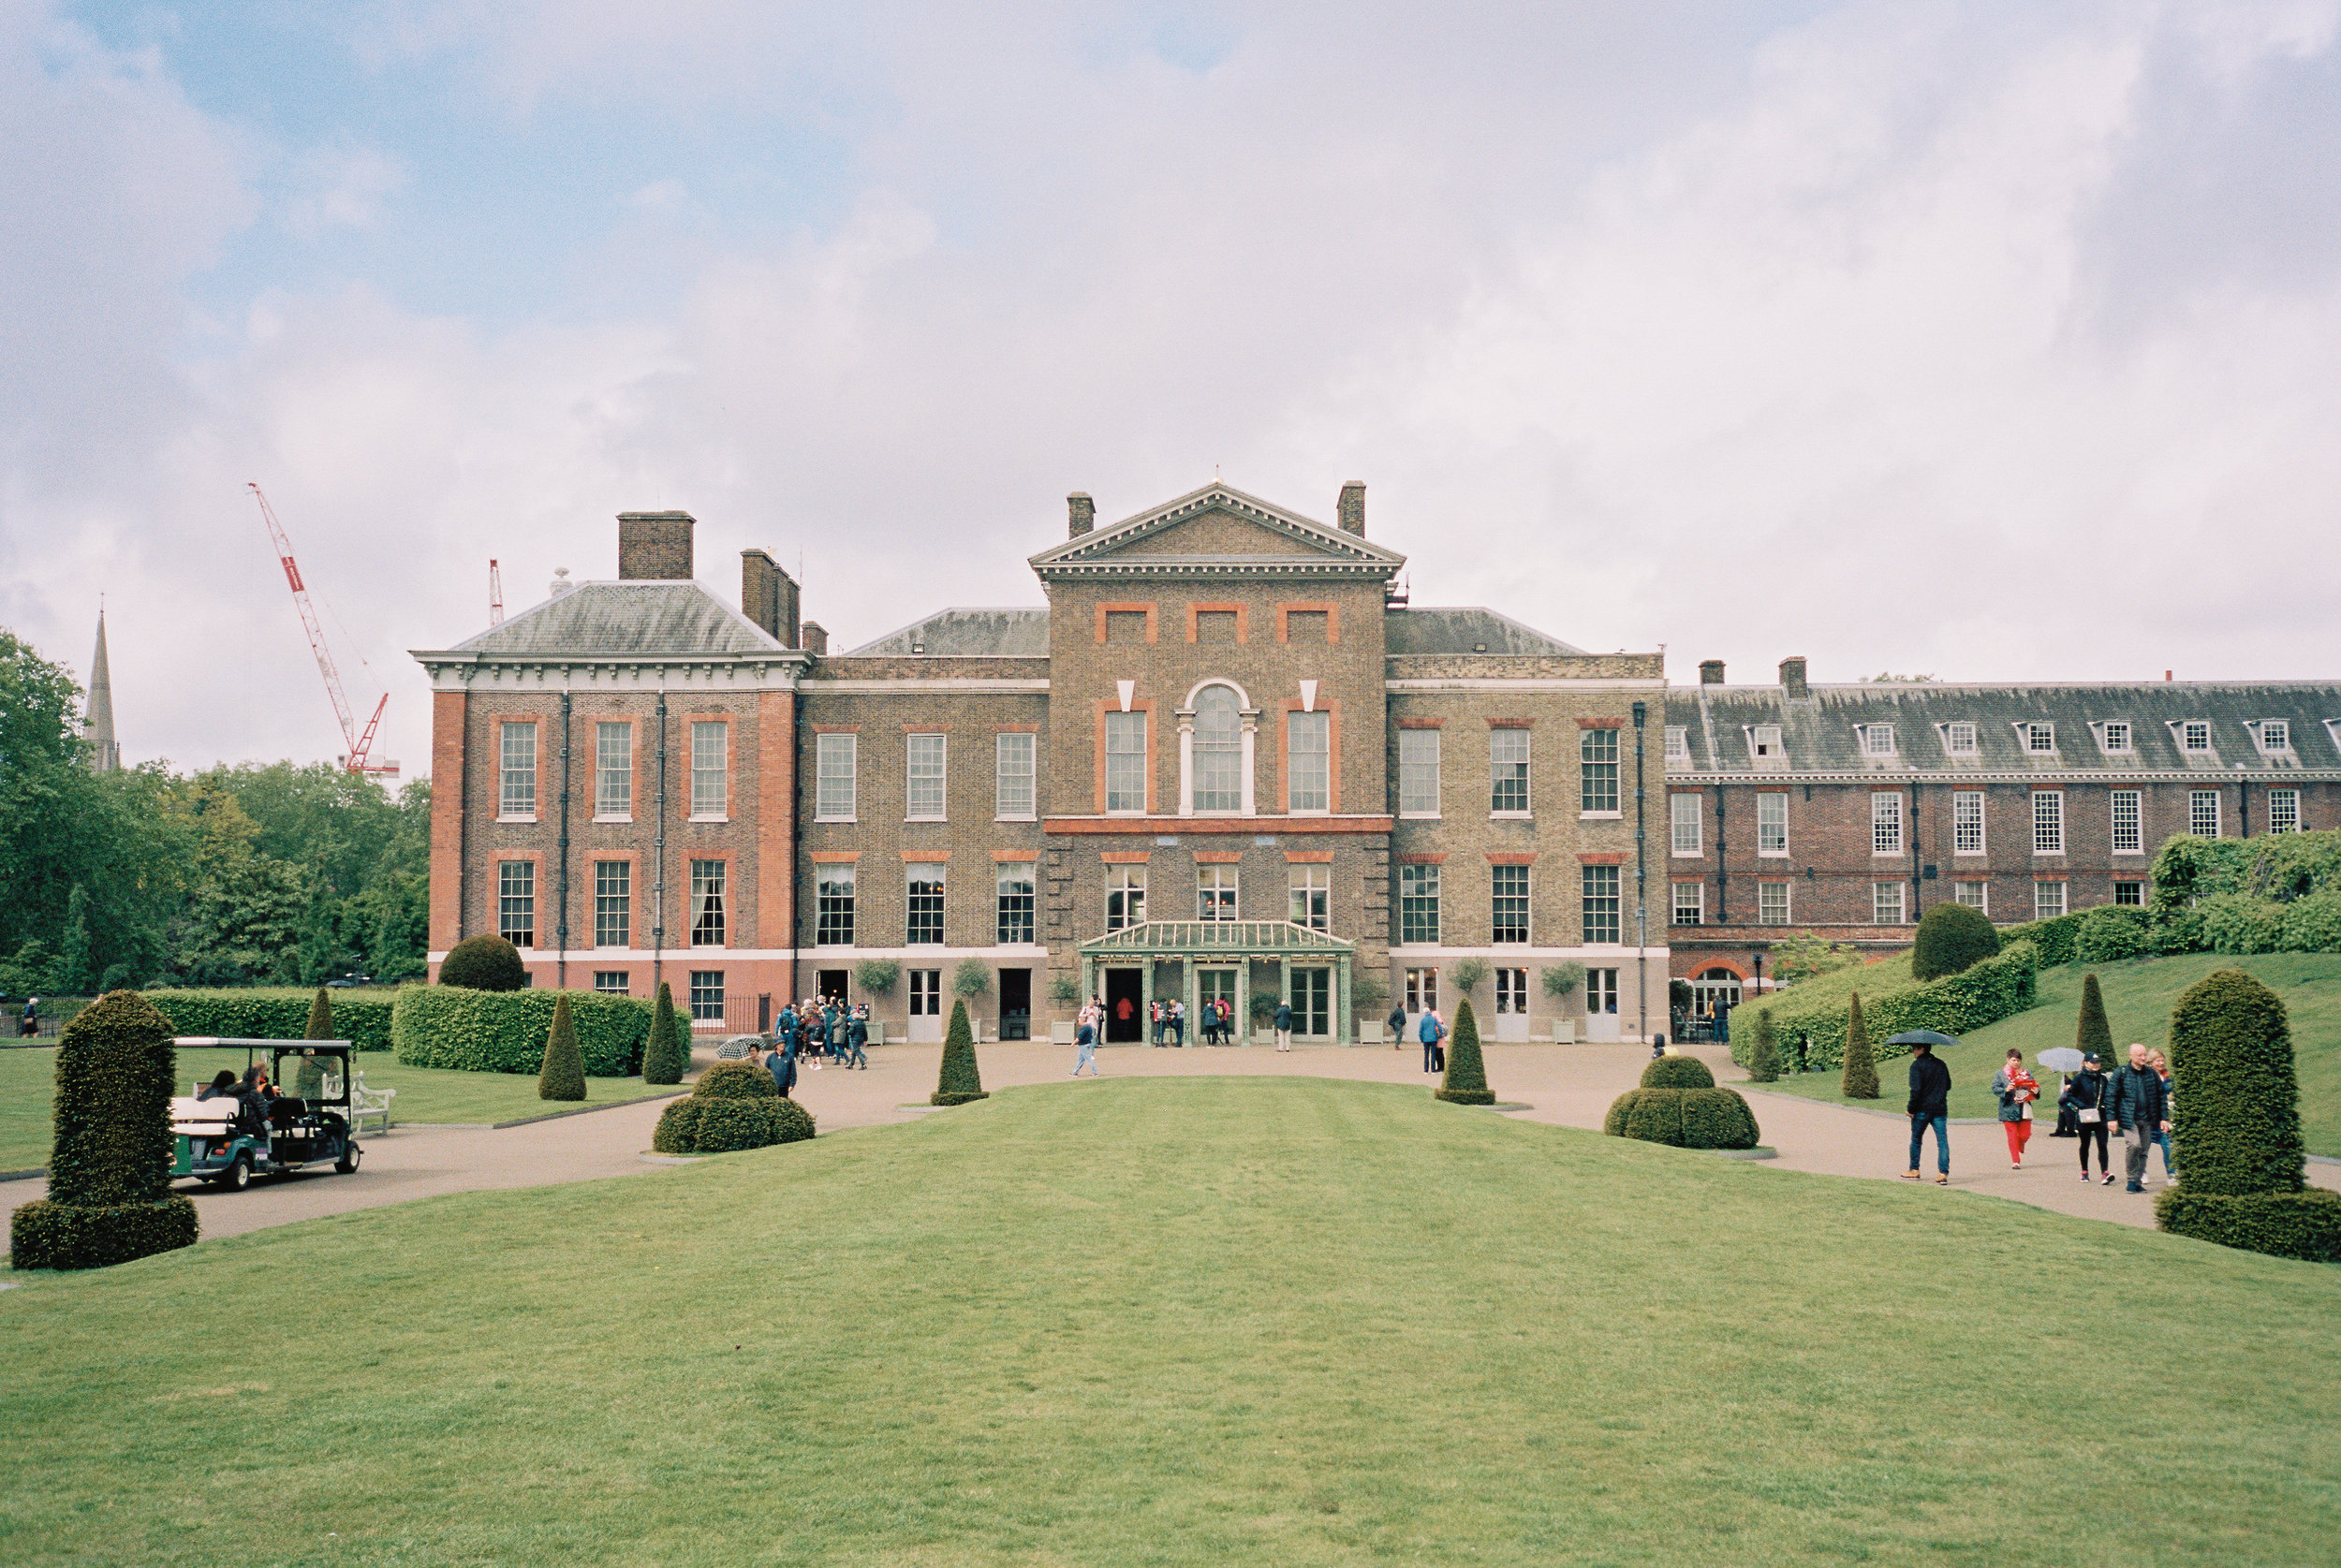 Kensington Palace | Contax T3 + Portra 160. Scanned on Fuji Frontier SP3000.